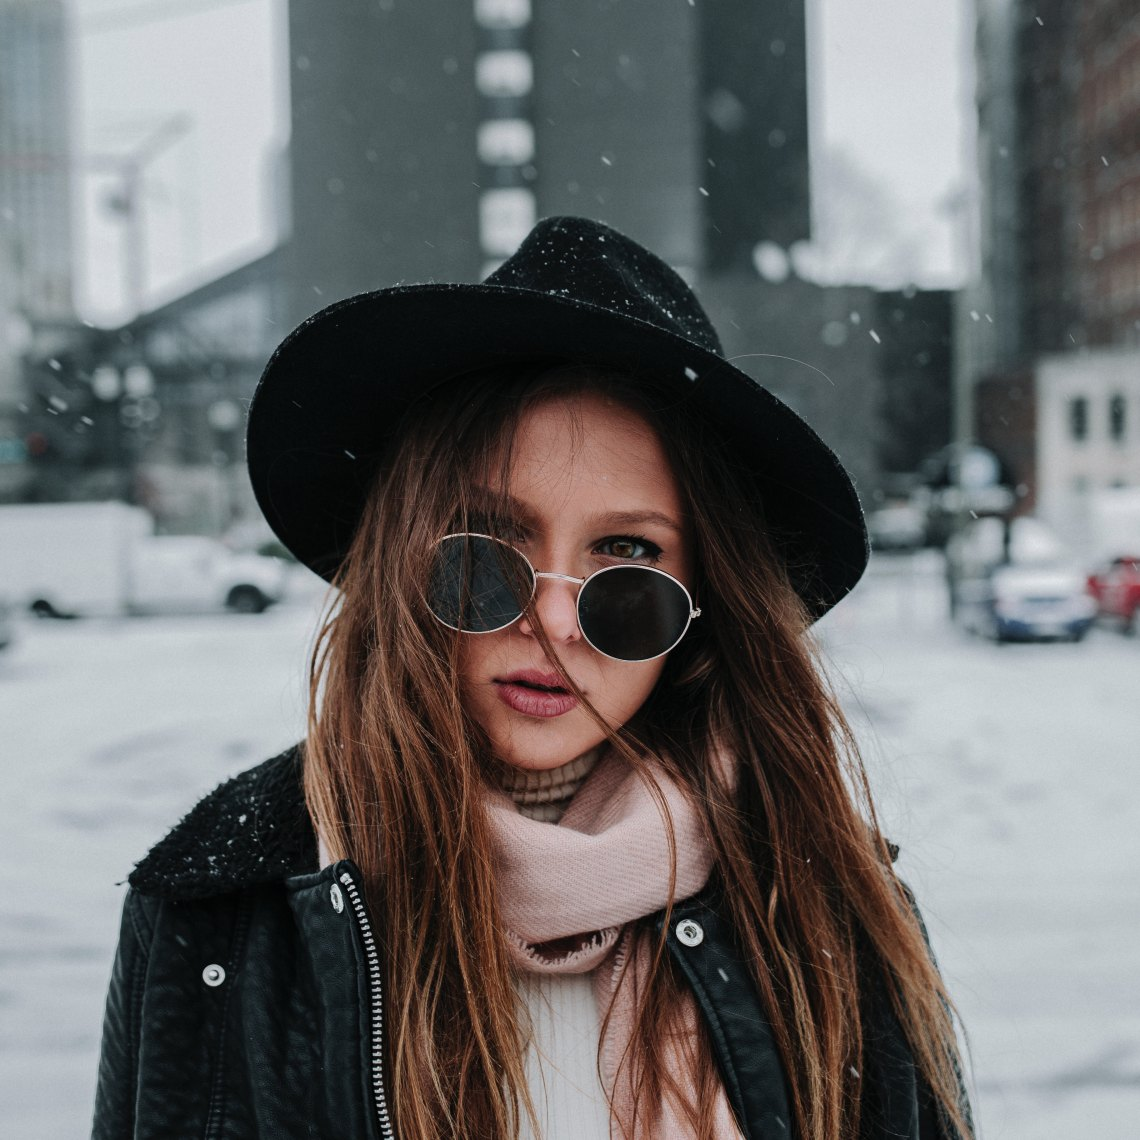 girl in the snow with sunglasses